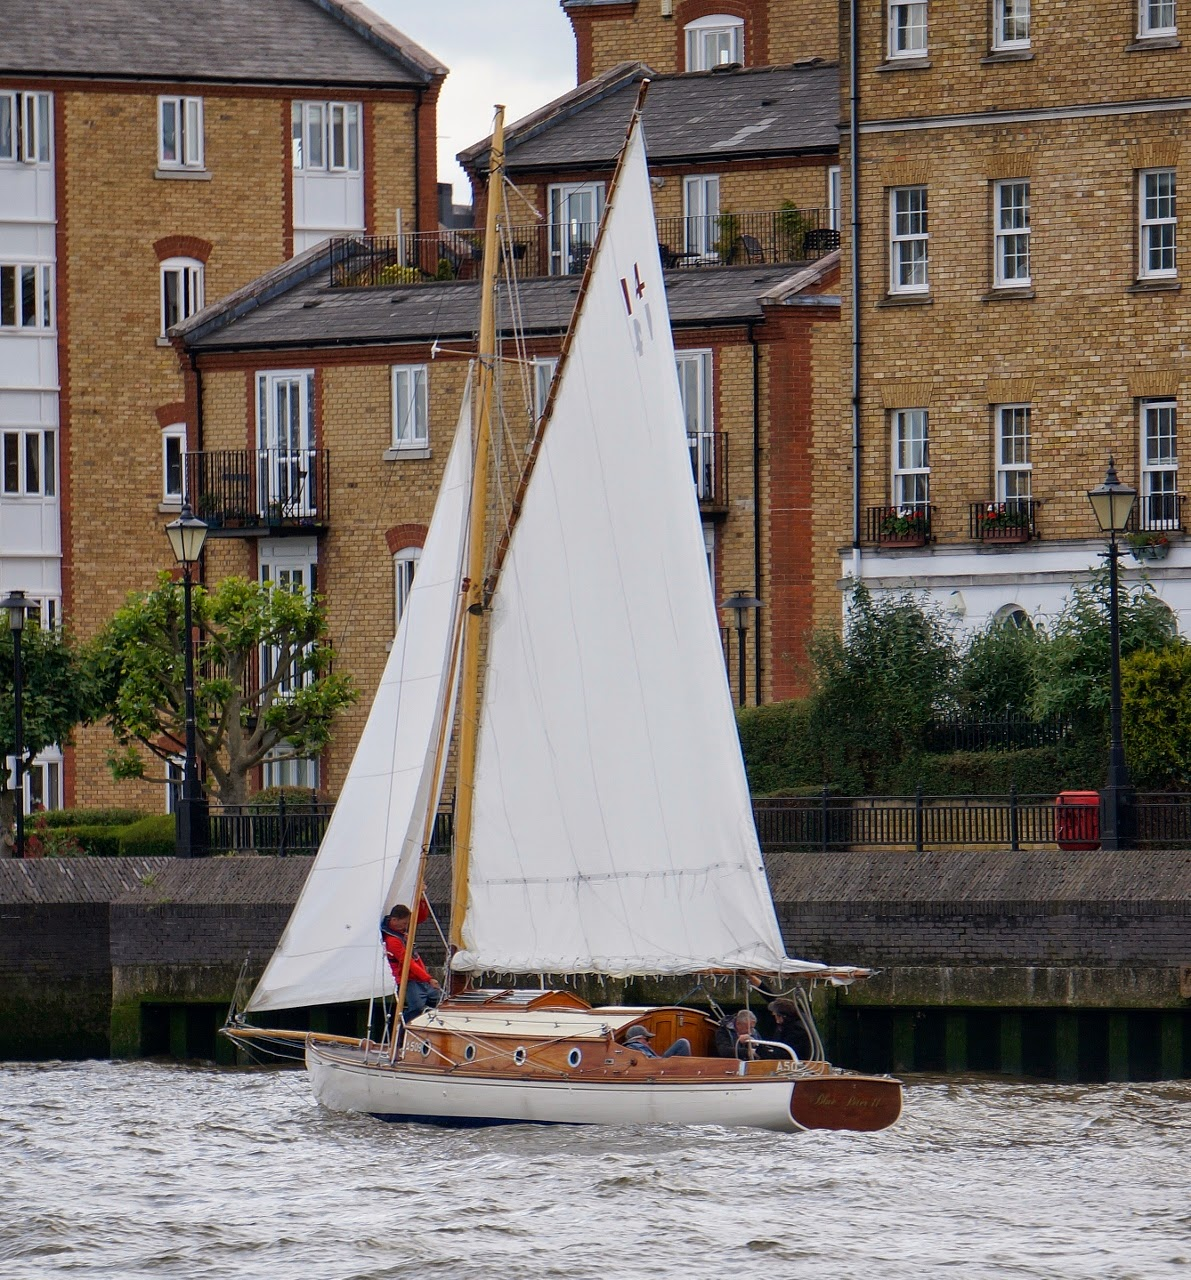 Captain JPs log: Two sailing boats and one rusting man